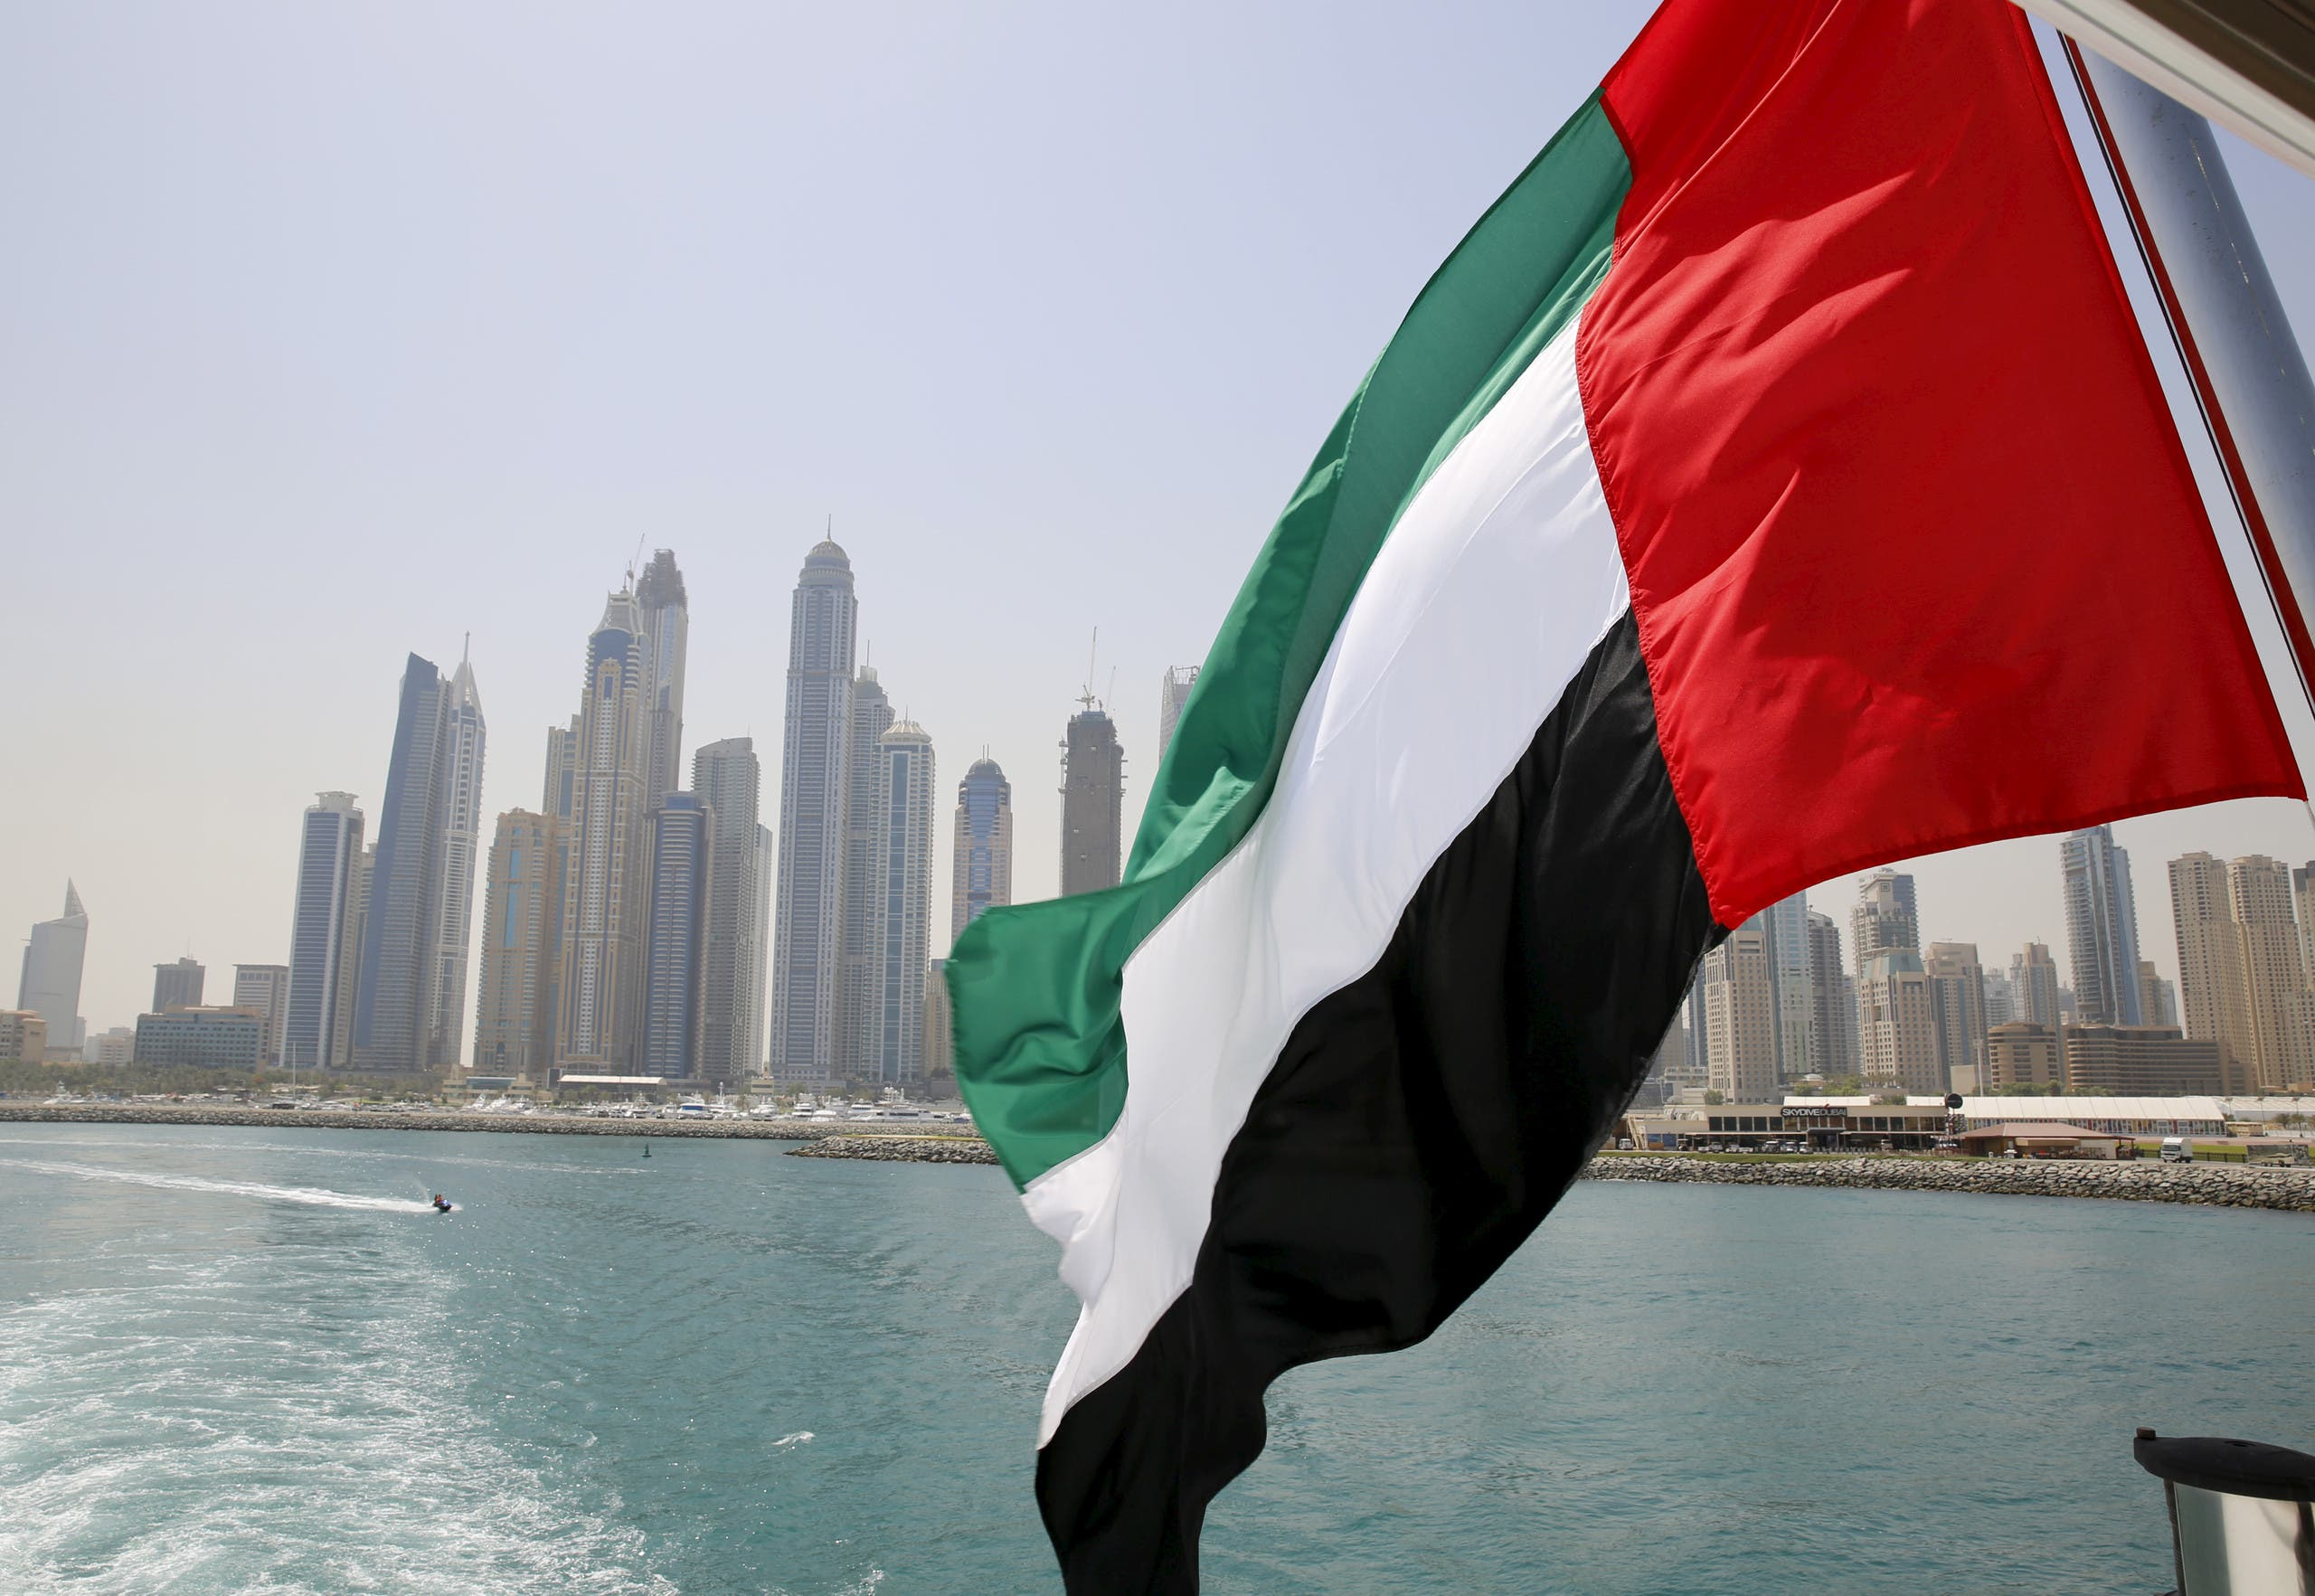 UAE flag flies over a boat at Dubai Marina, Dubai, United Arab Emirates May 22, 2015. (Reuters)